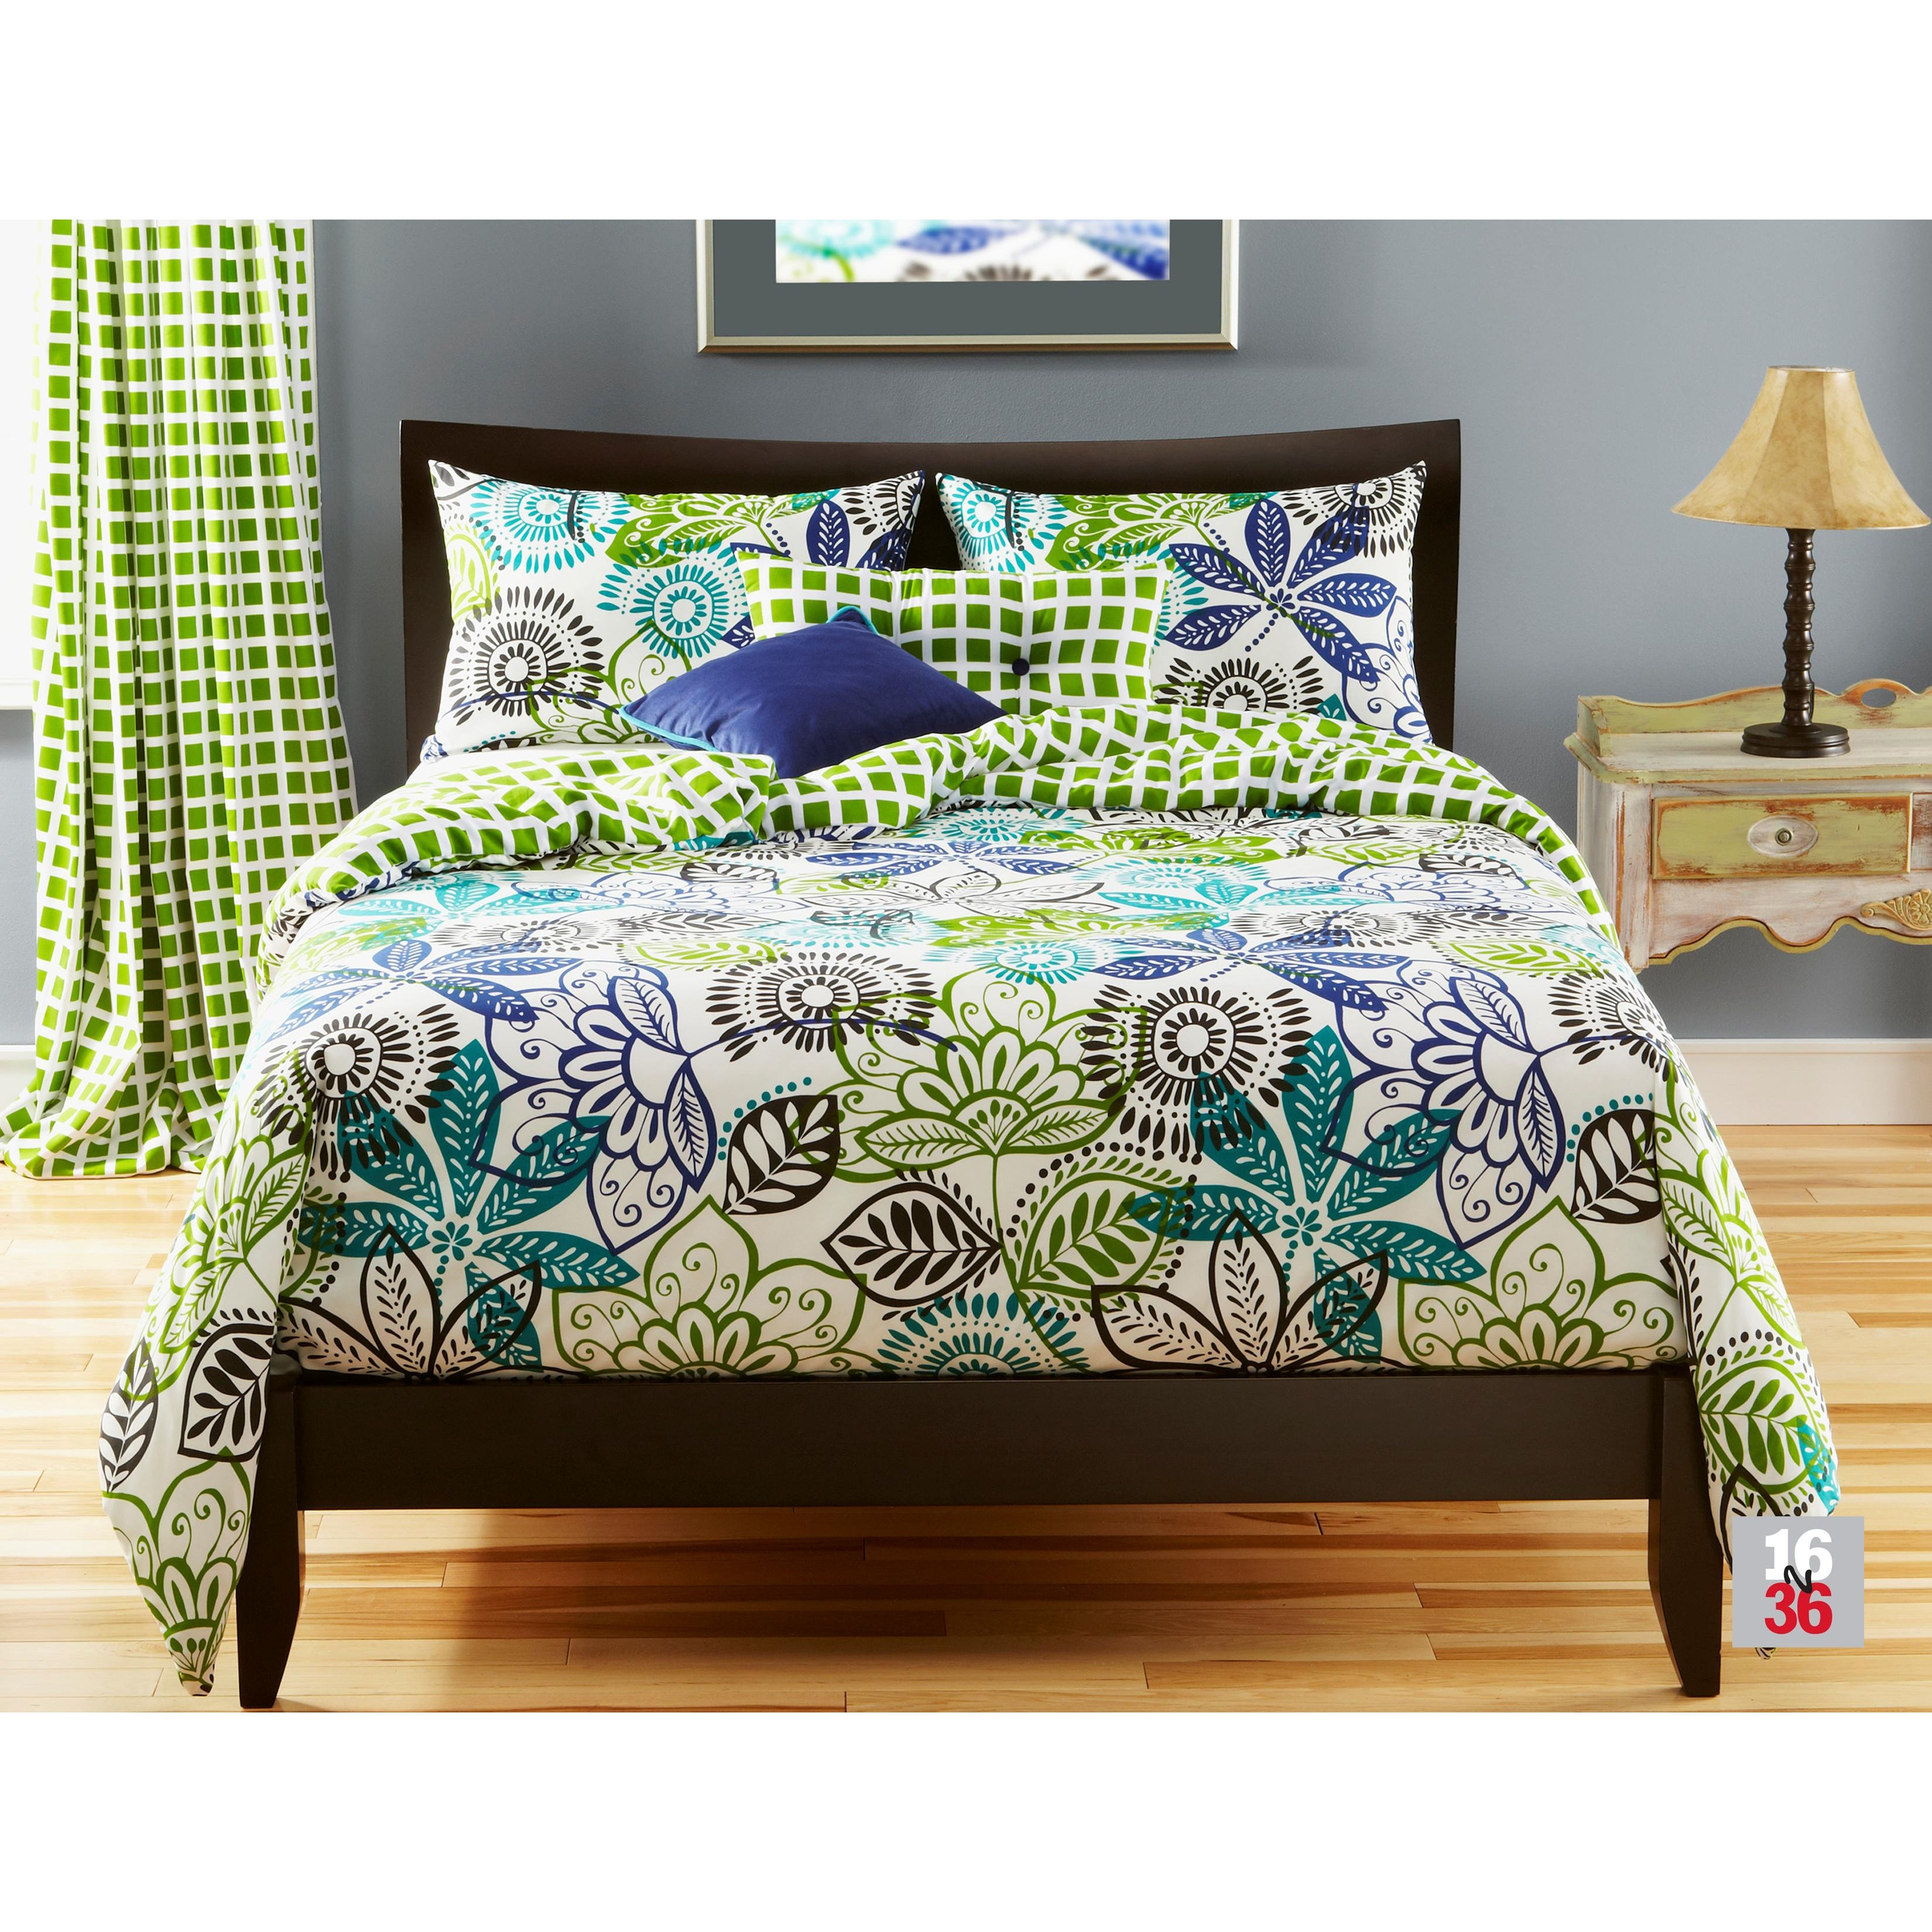 Bali 6 Piece Duvet Cover And Insert Set Free Shipping On